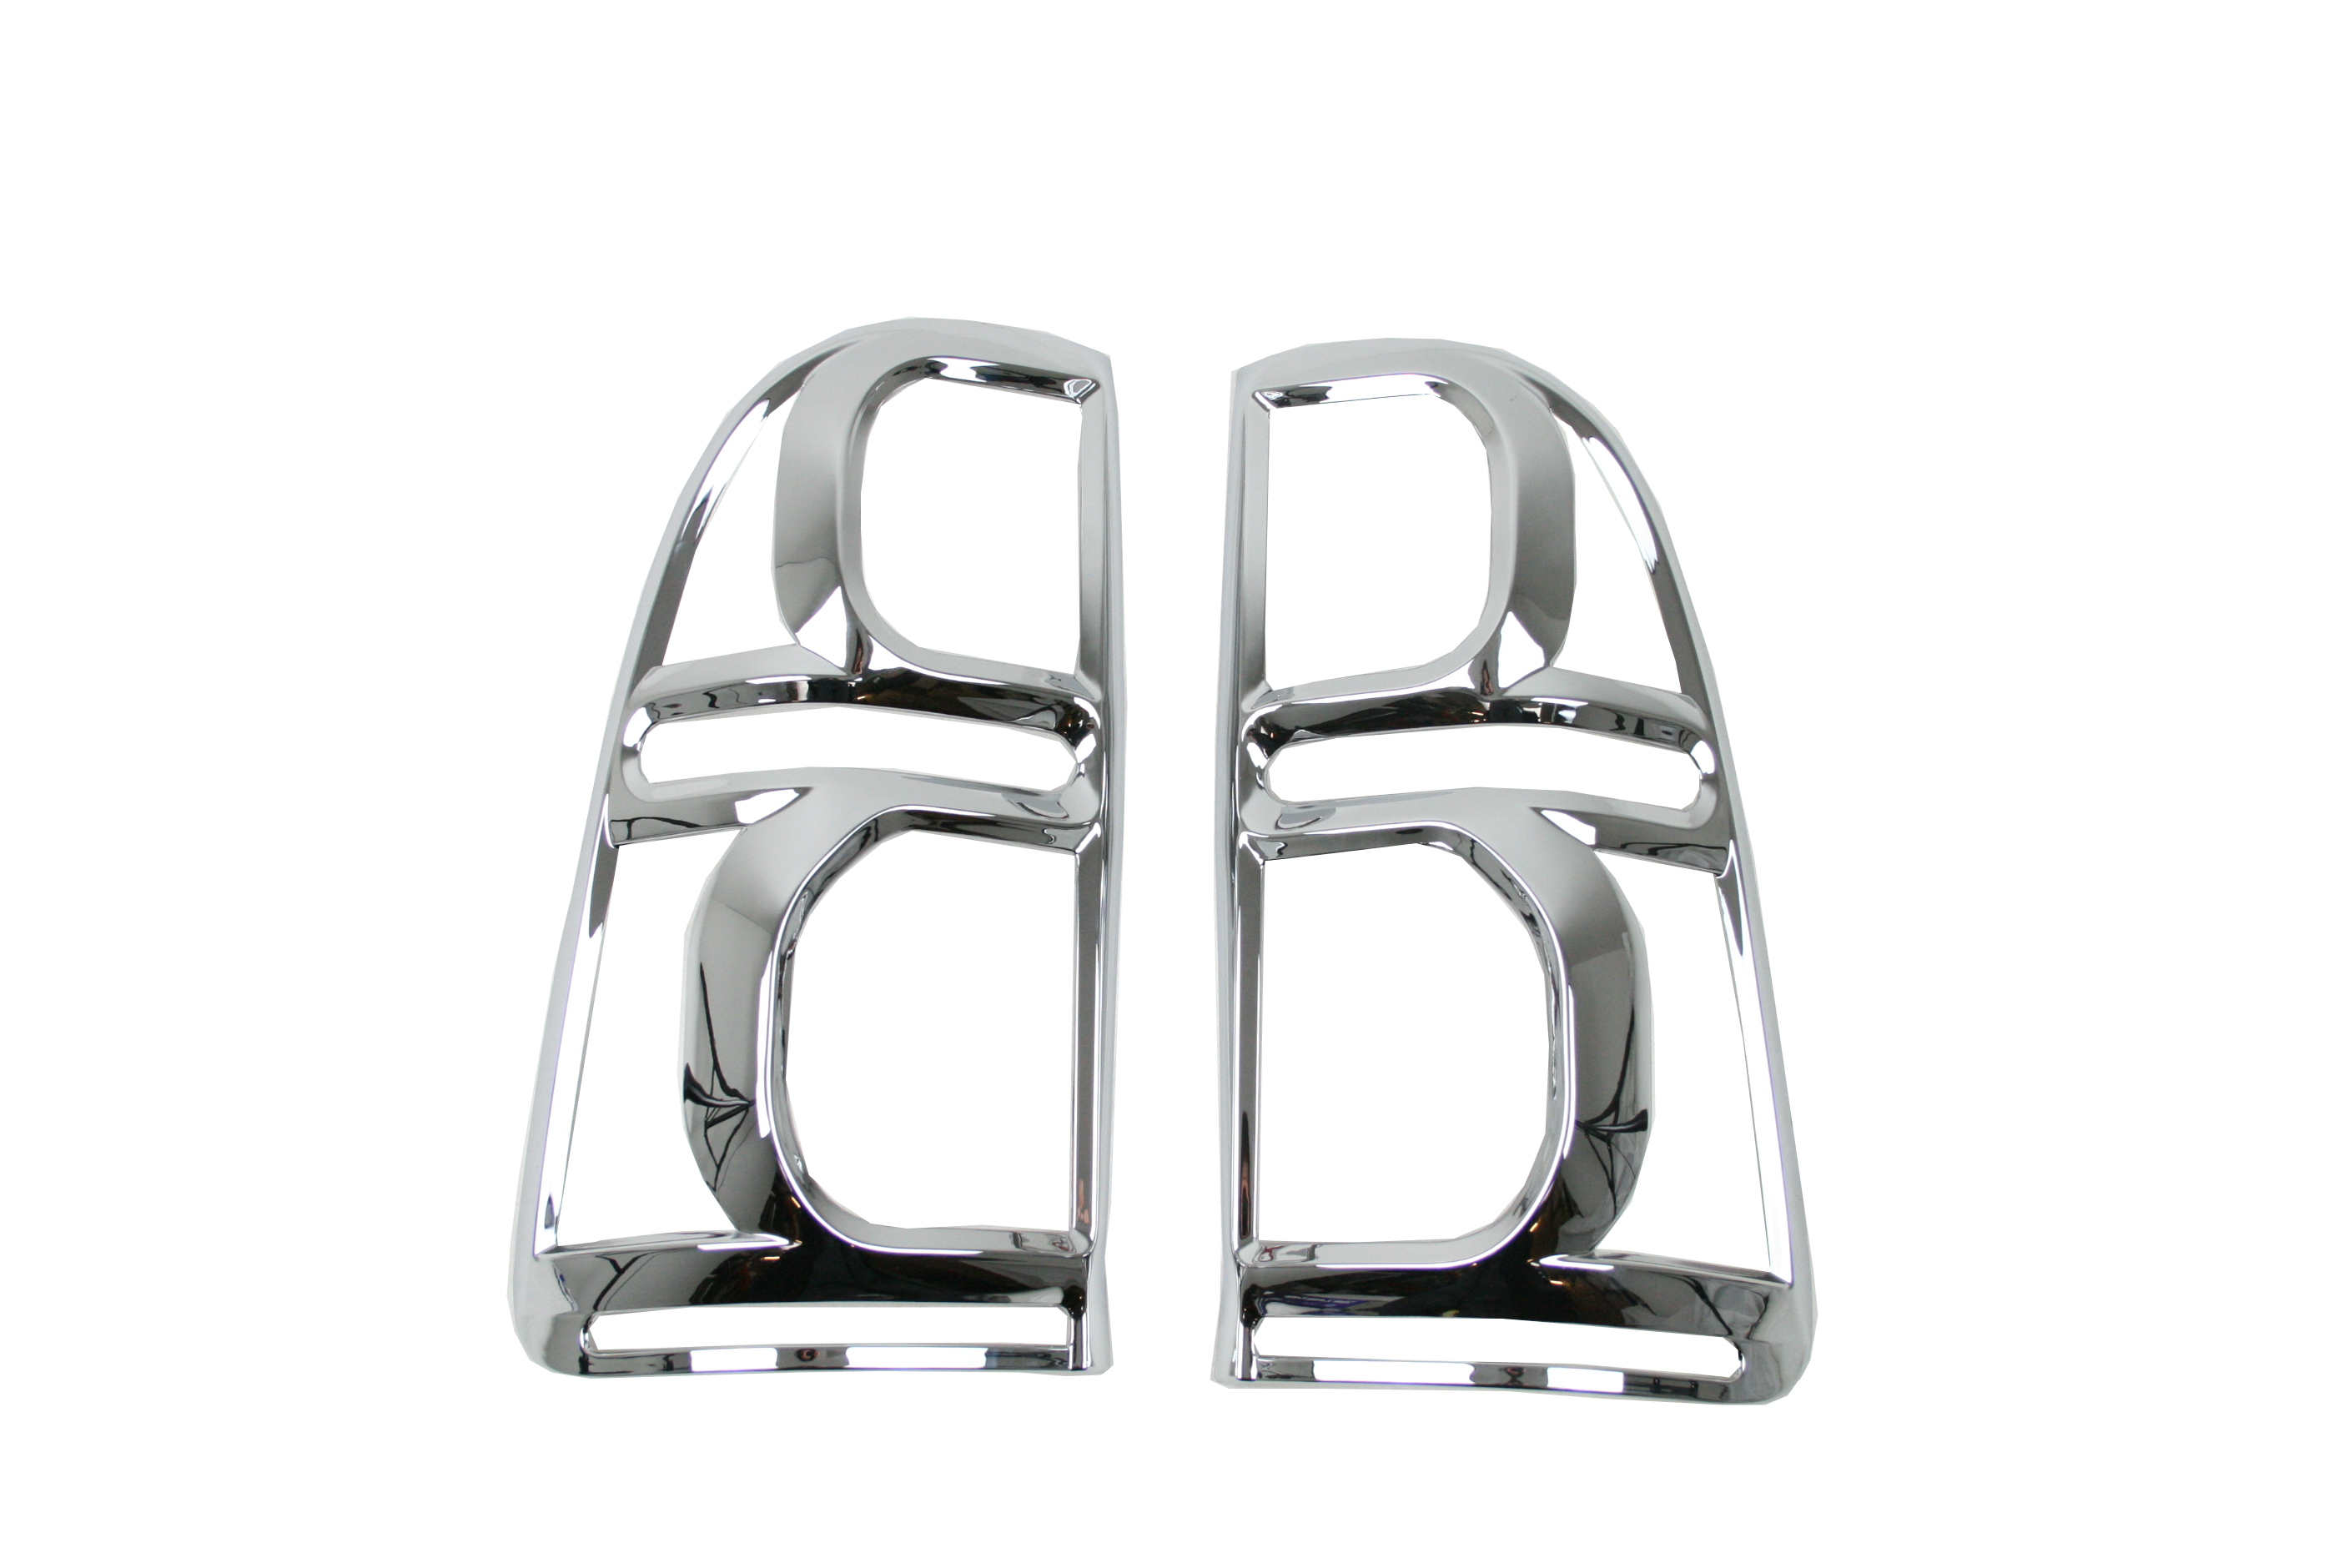 Toyota Vigo Hilux Chromed Tail Light Surrounds